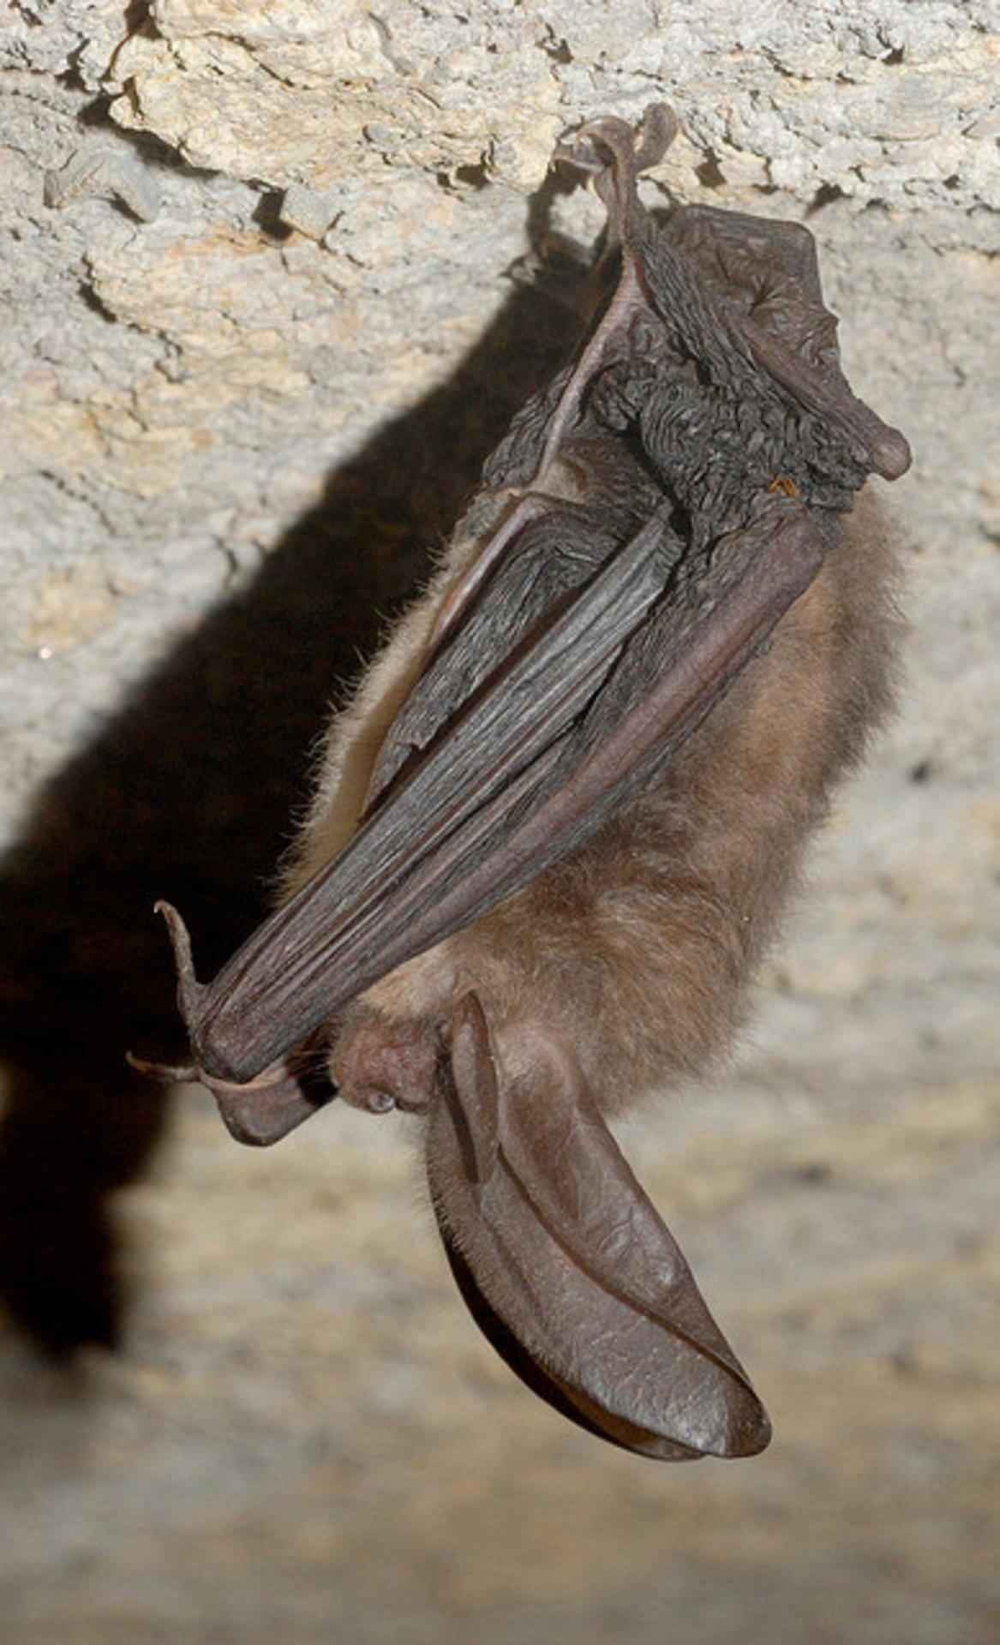 A small brown bat with large ears hanging from the stone ceiling of a cave.